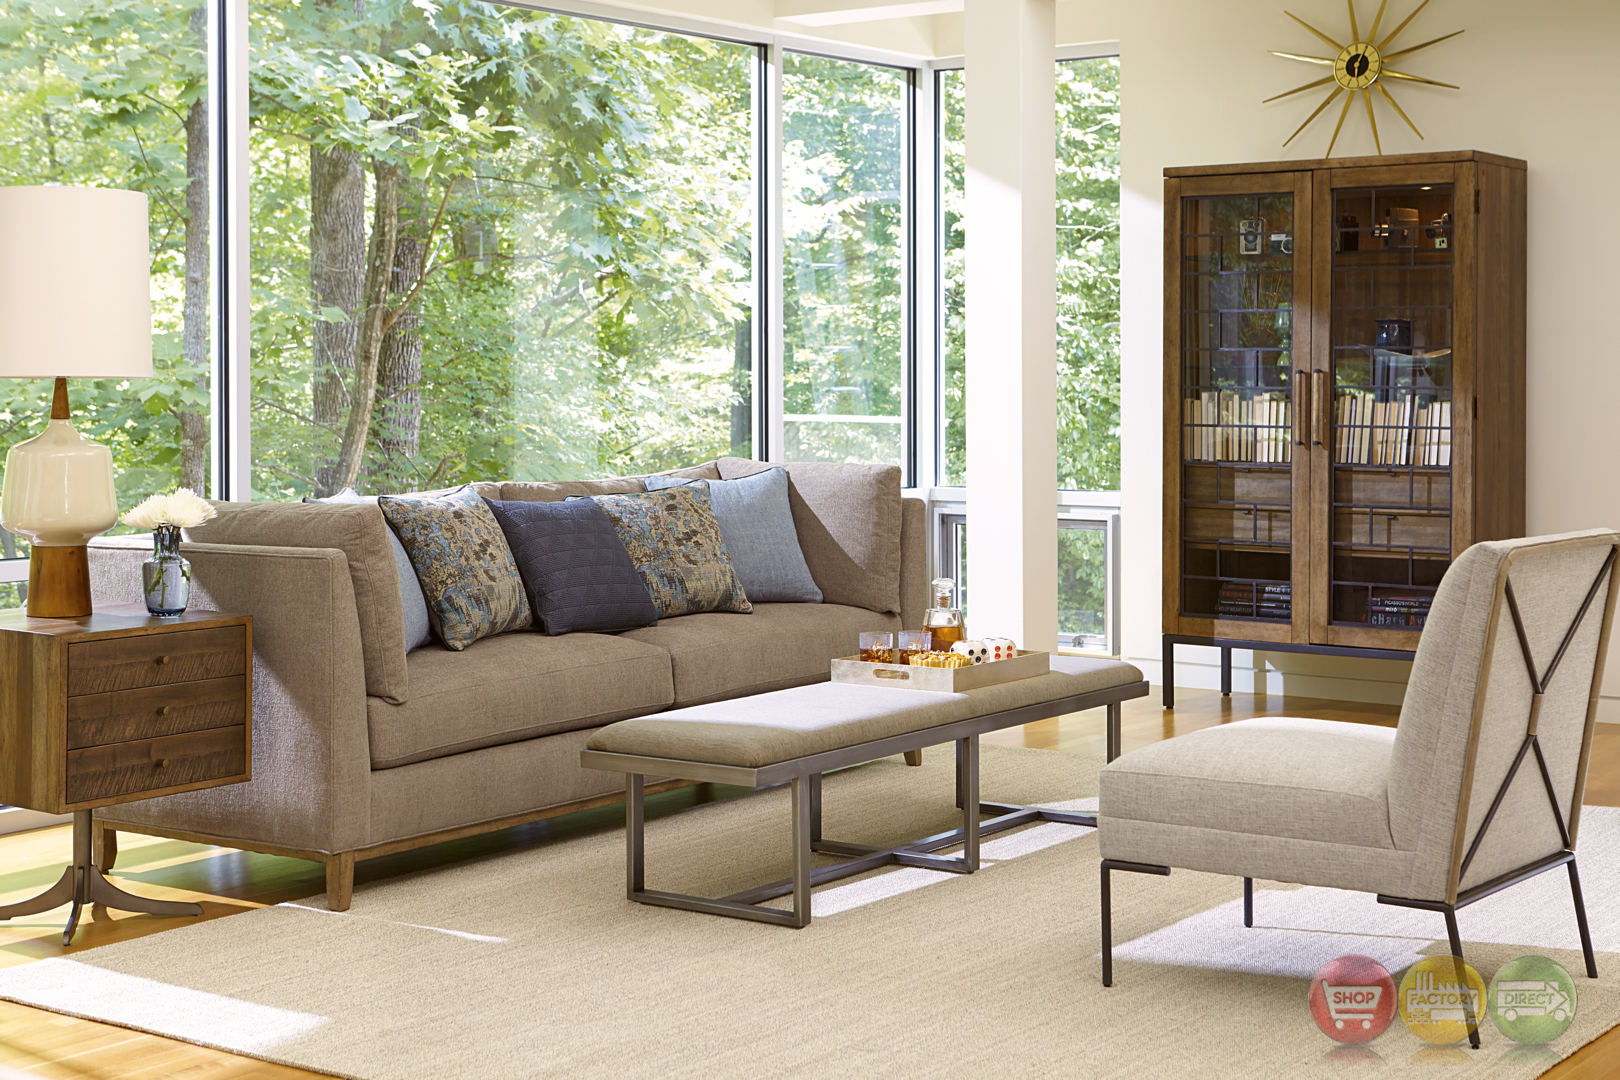 epicenters chaplin natural beige sofa with rustic pine accents